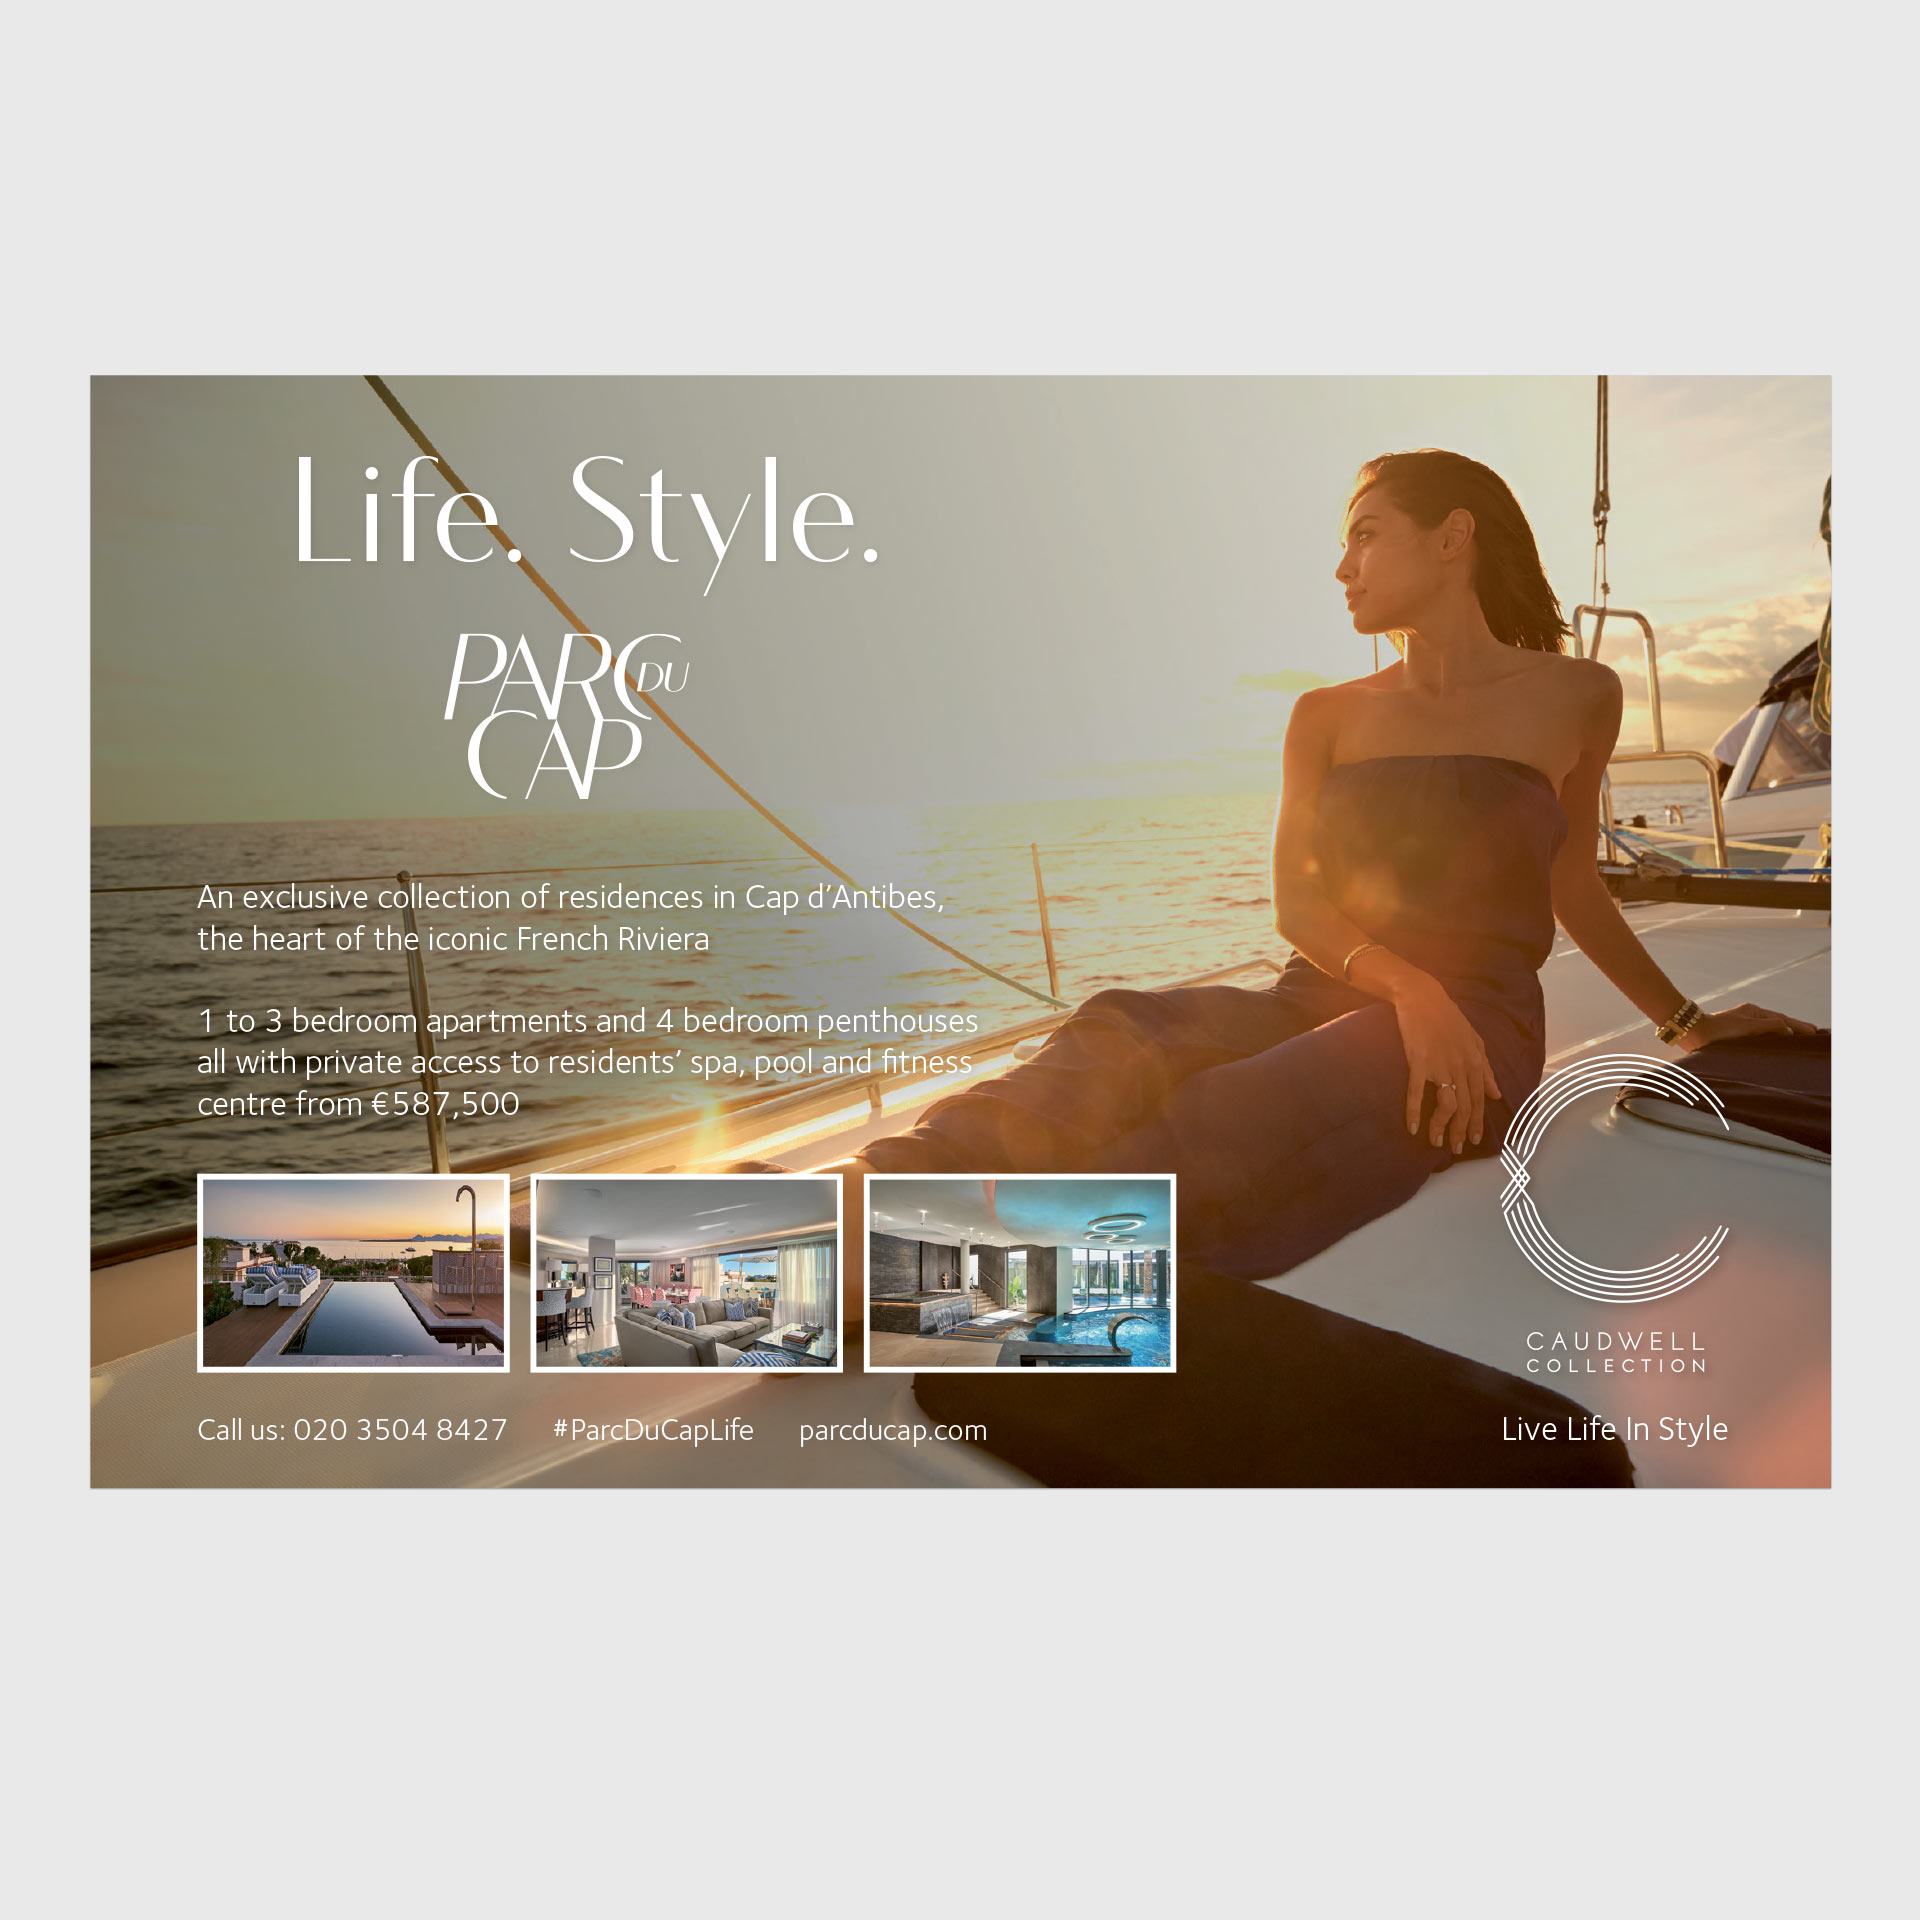 Parc Du Cap | Luxury Development Cap d'Antibes | French Riviera | Luxury Resort & Residential Marketing | Kingsland Linassi